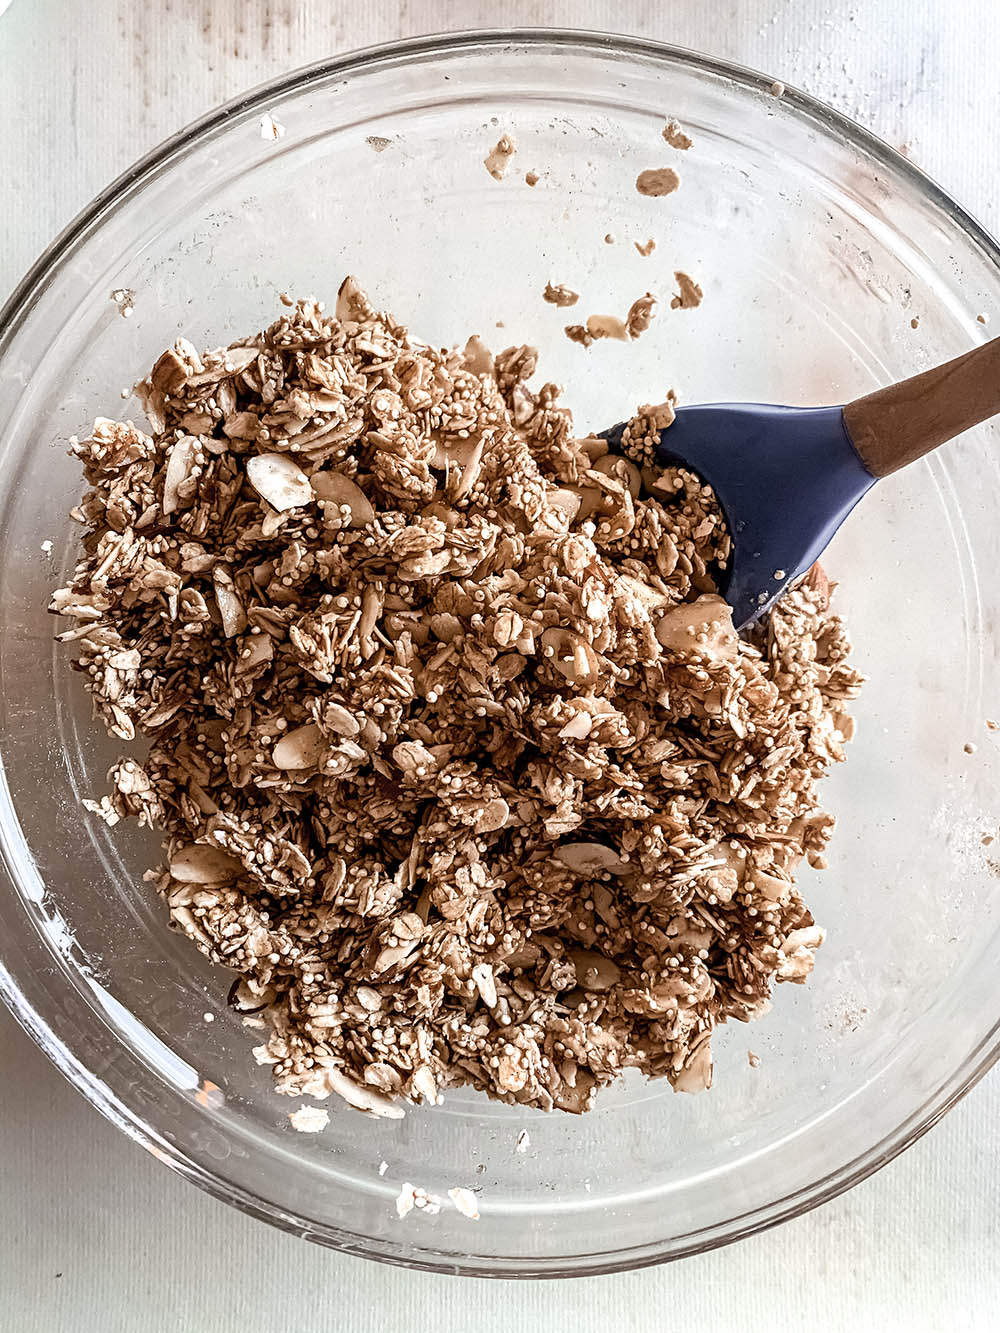 Mixed granola before baking in a large glass bowl.